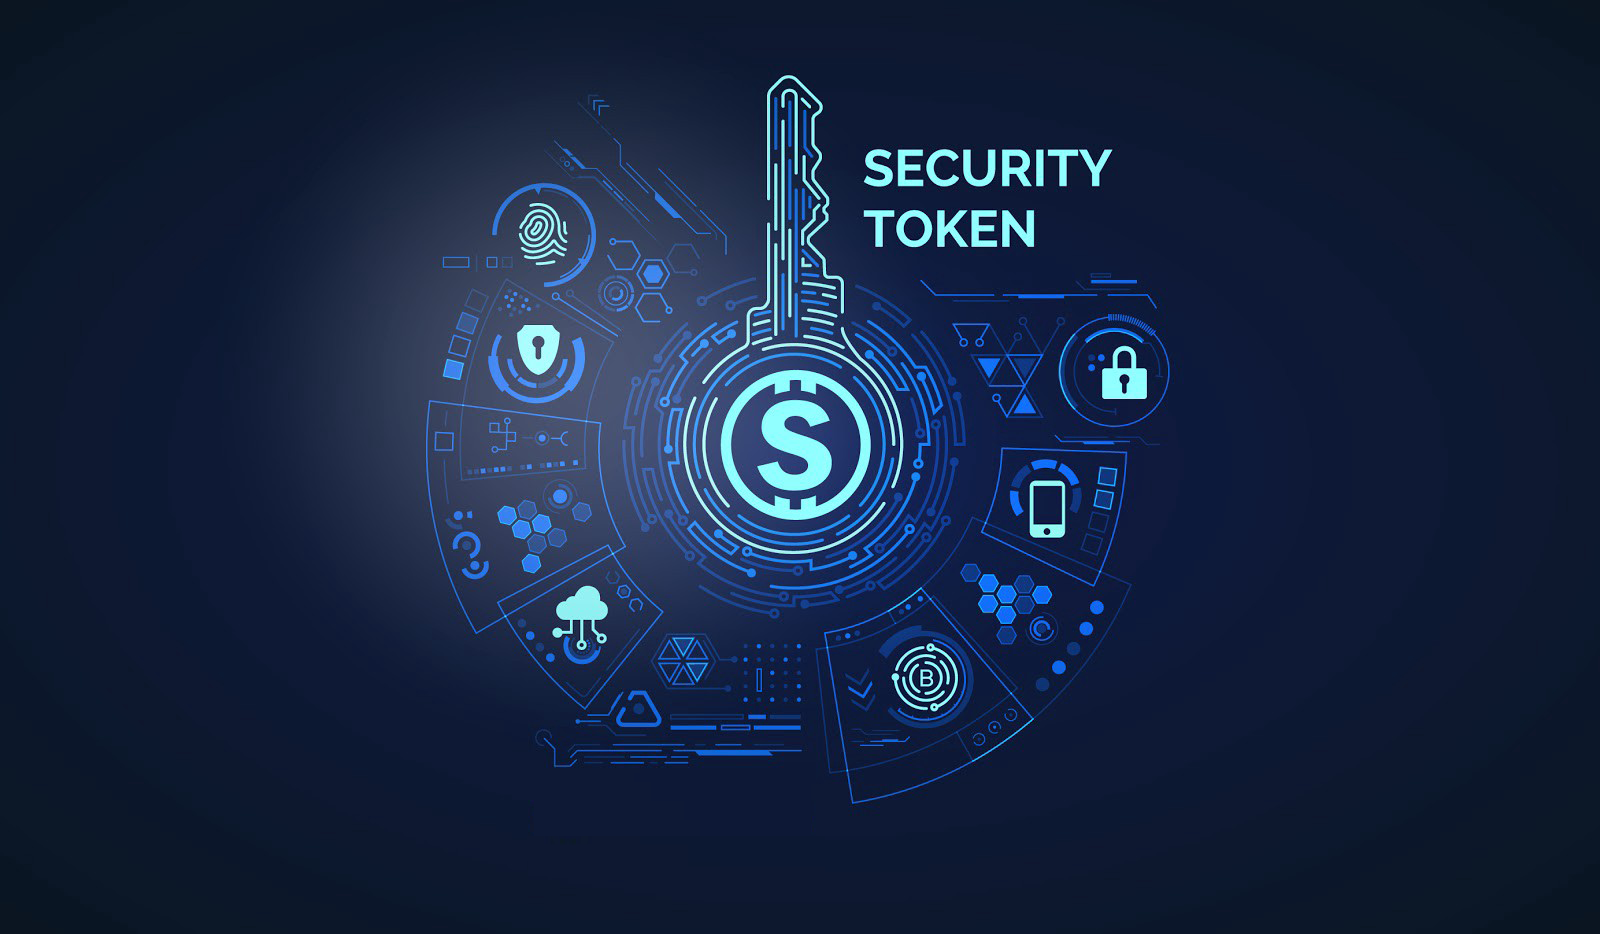 Security Token Platform Receives Transfer Agent License From SEC